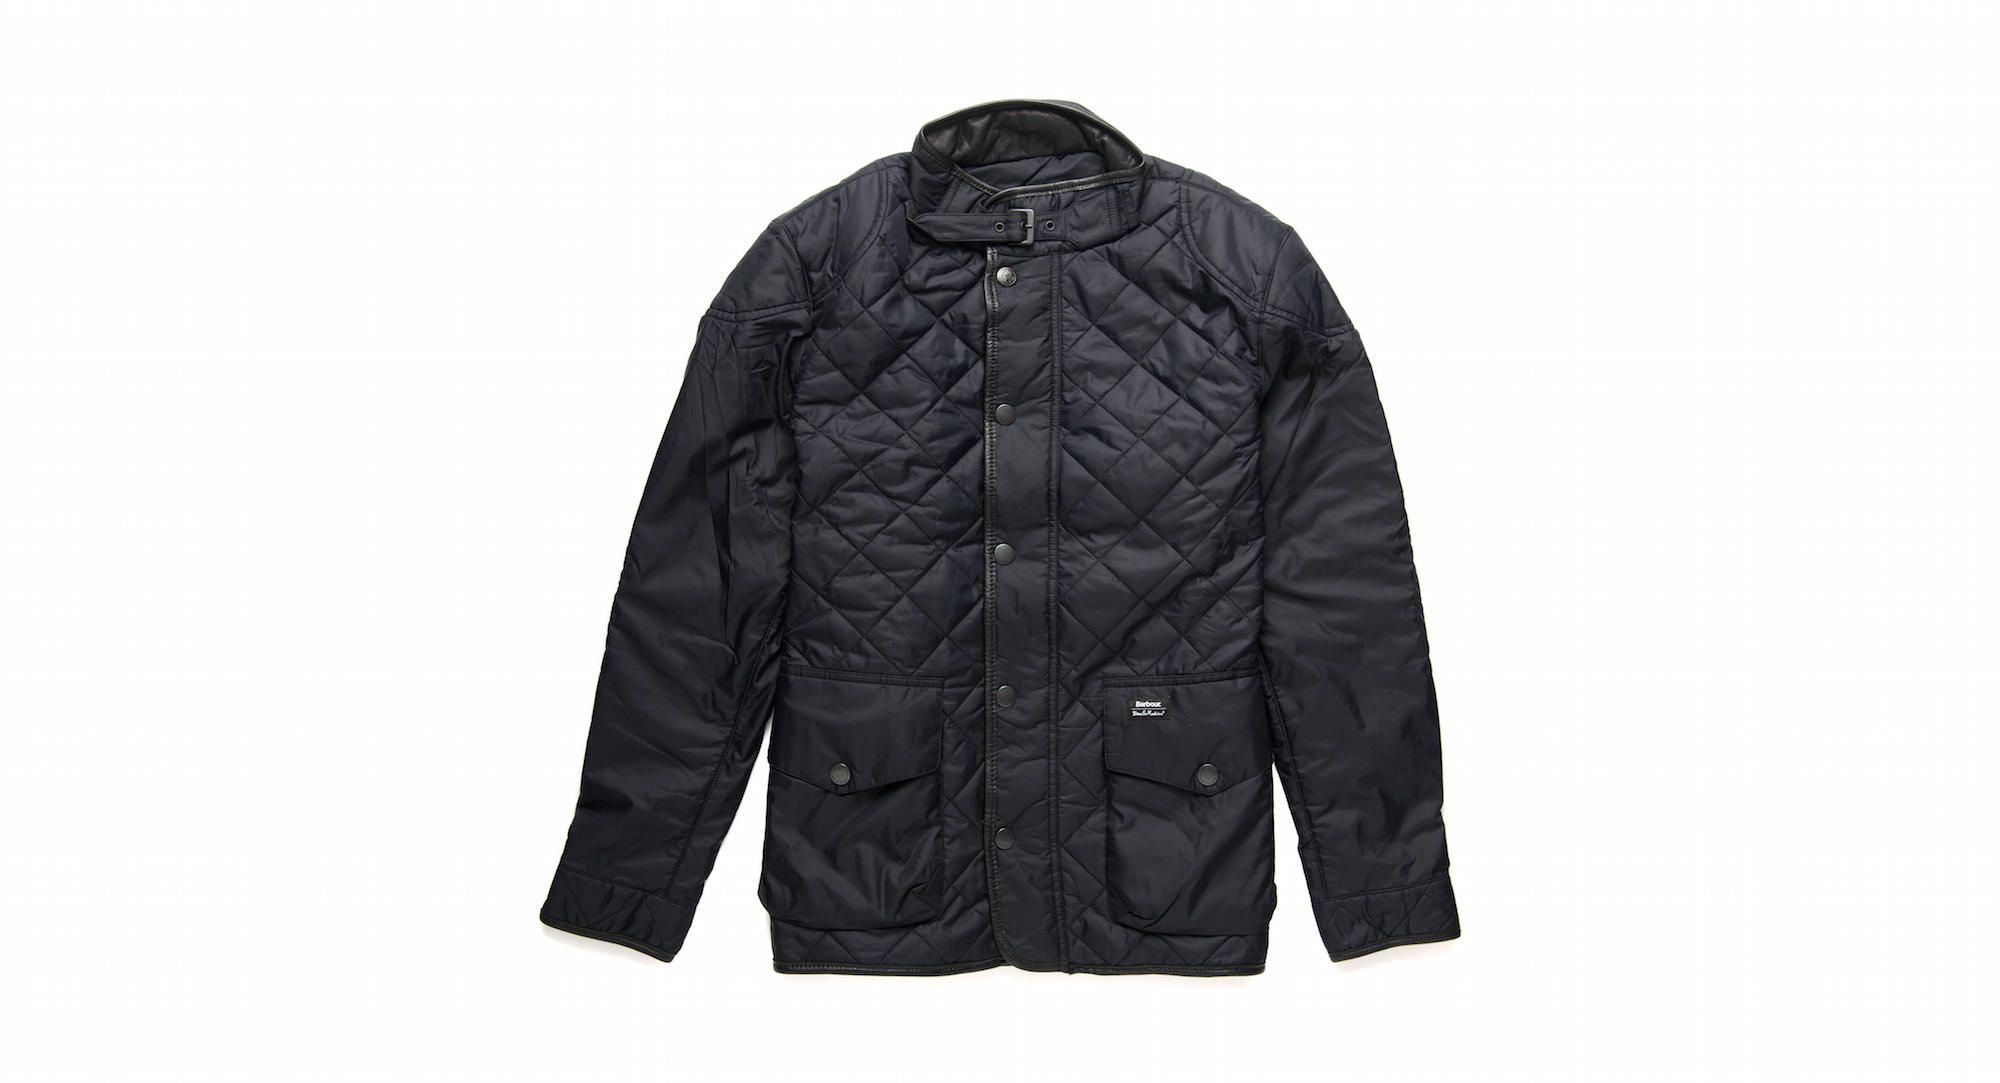 The Euripides Quilted Motorcycle Jacket is the result of a new collaboration between Deus Ex Machina and Barbour, aimed at bringing the 120 year old heritage of the British company to a new generation of motorcyclists. Ideally designed for use in climates with proper winter weather, the Euripides features Barbour's signature quilted front and back...